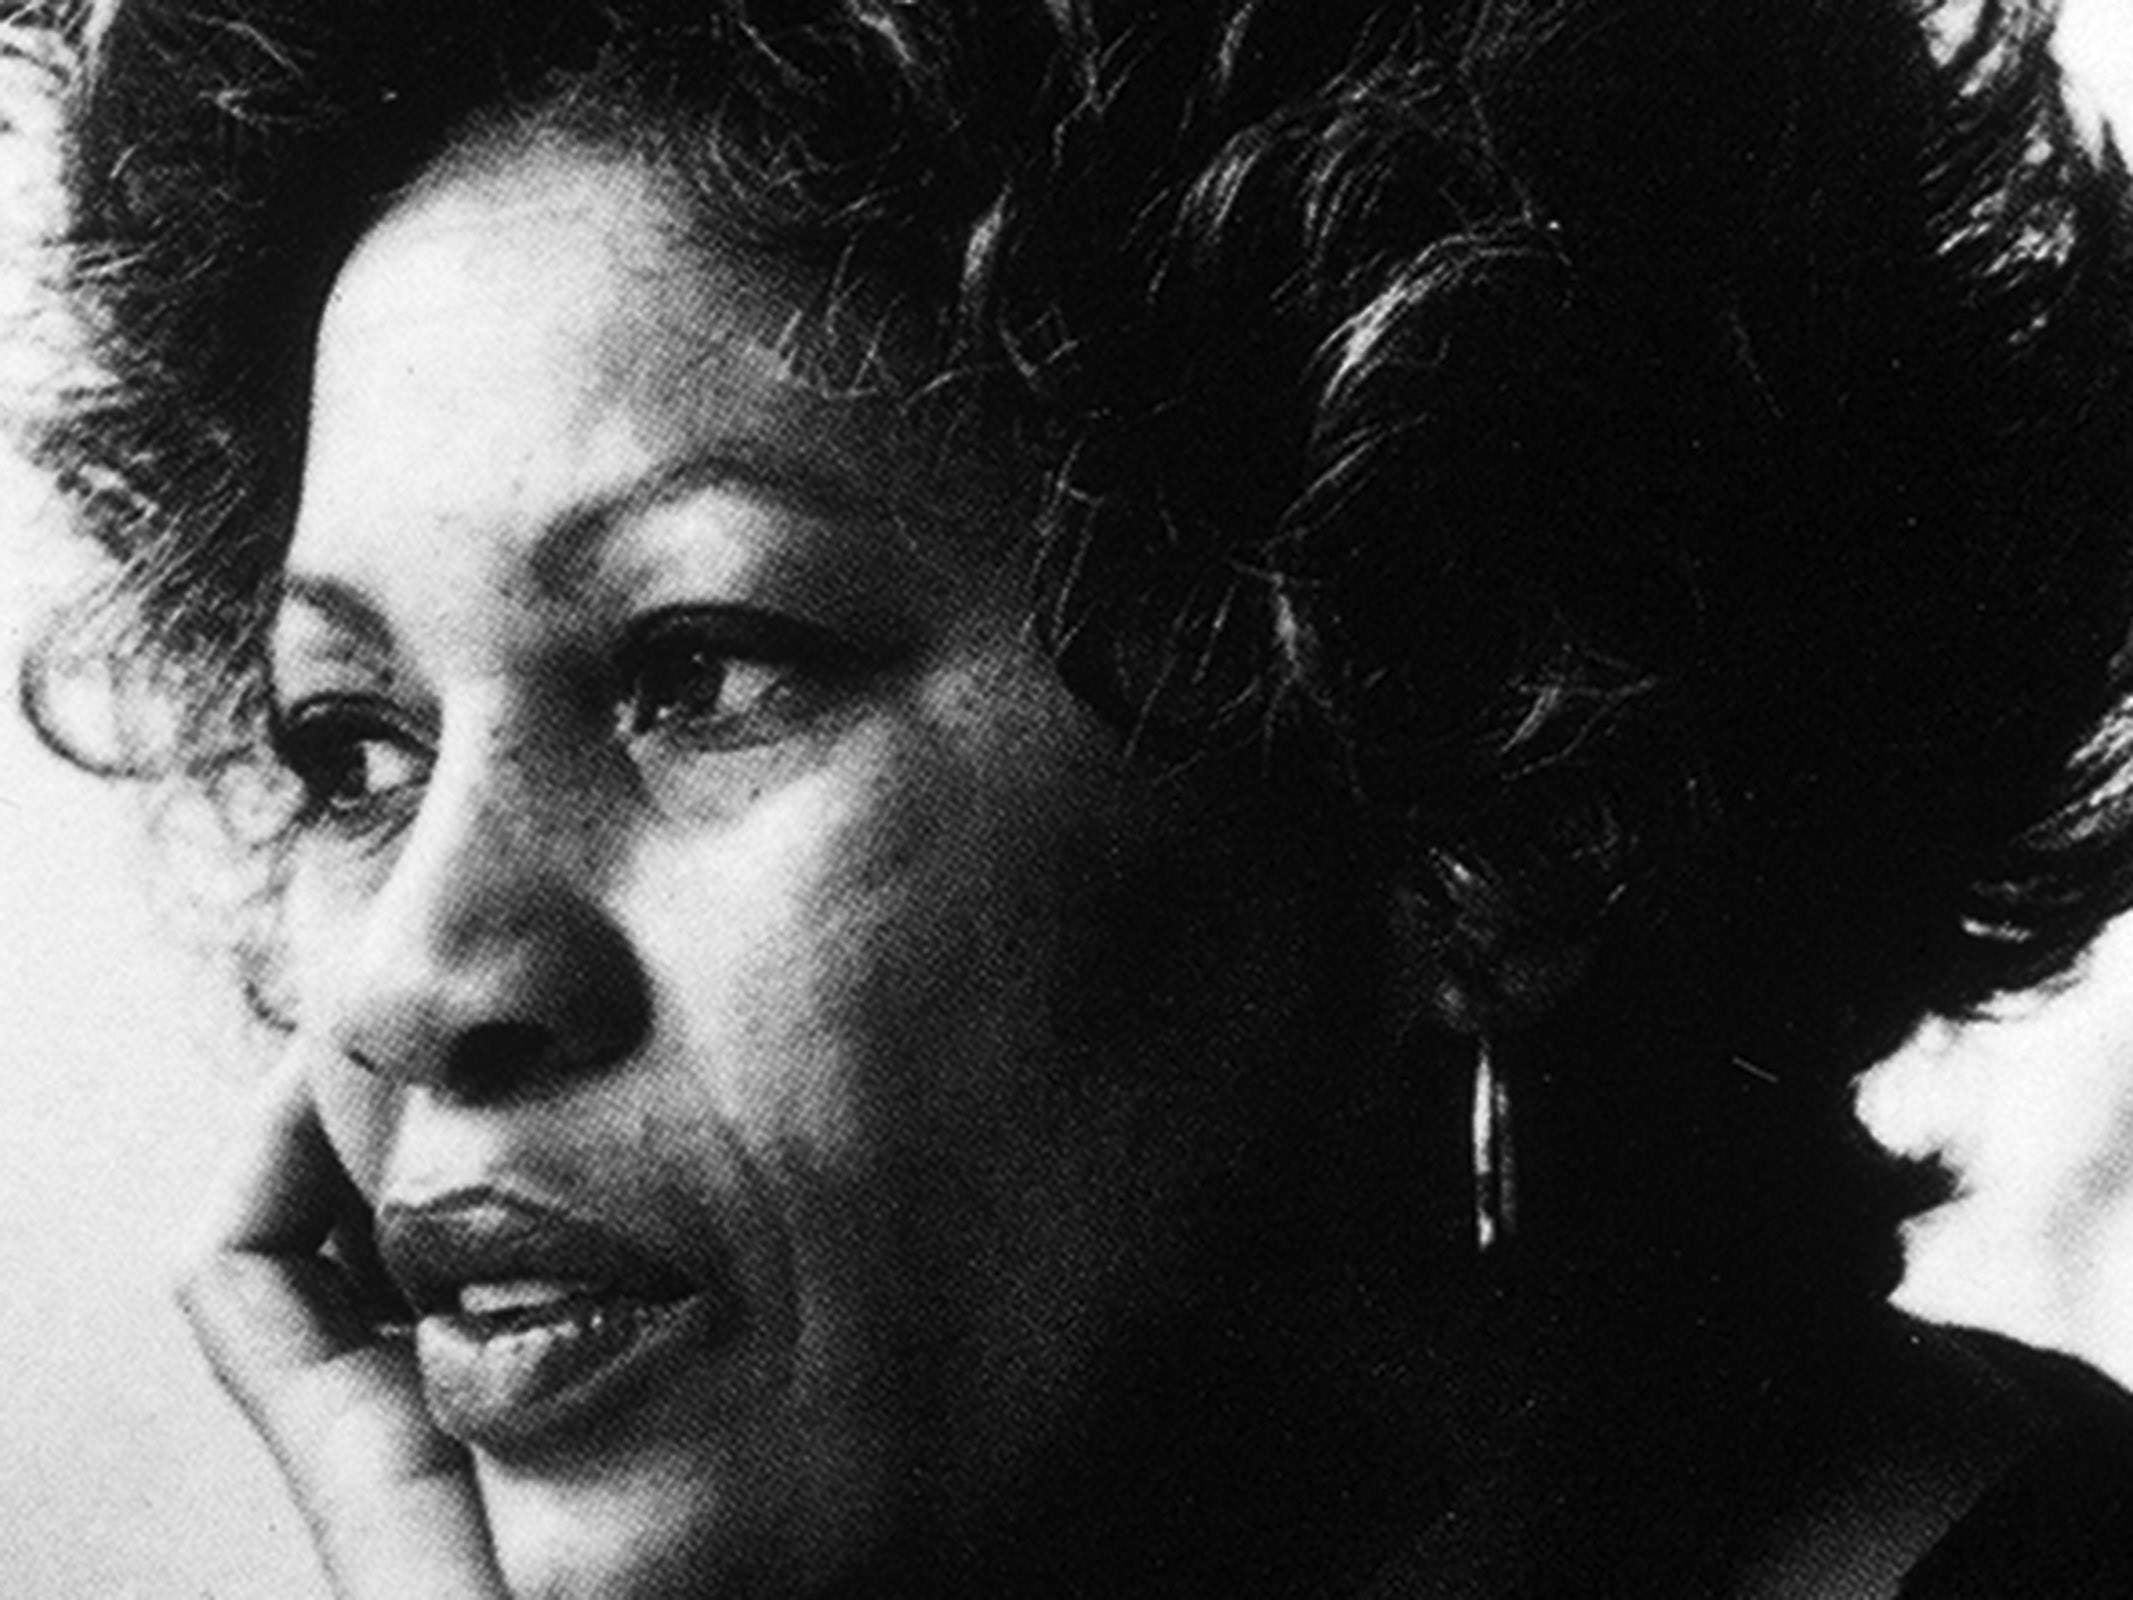 Lionel Shriver: Toni Morrison picked the wrong subject in God Help the Child